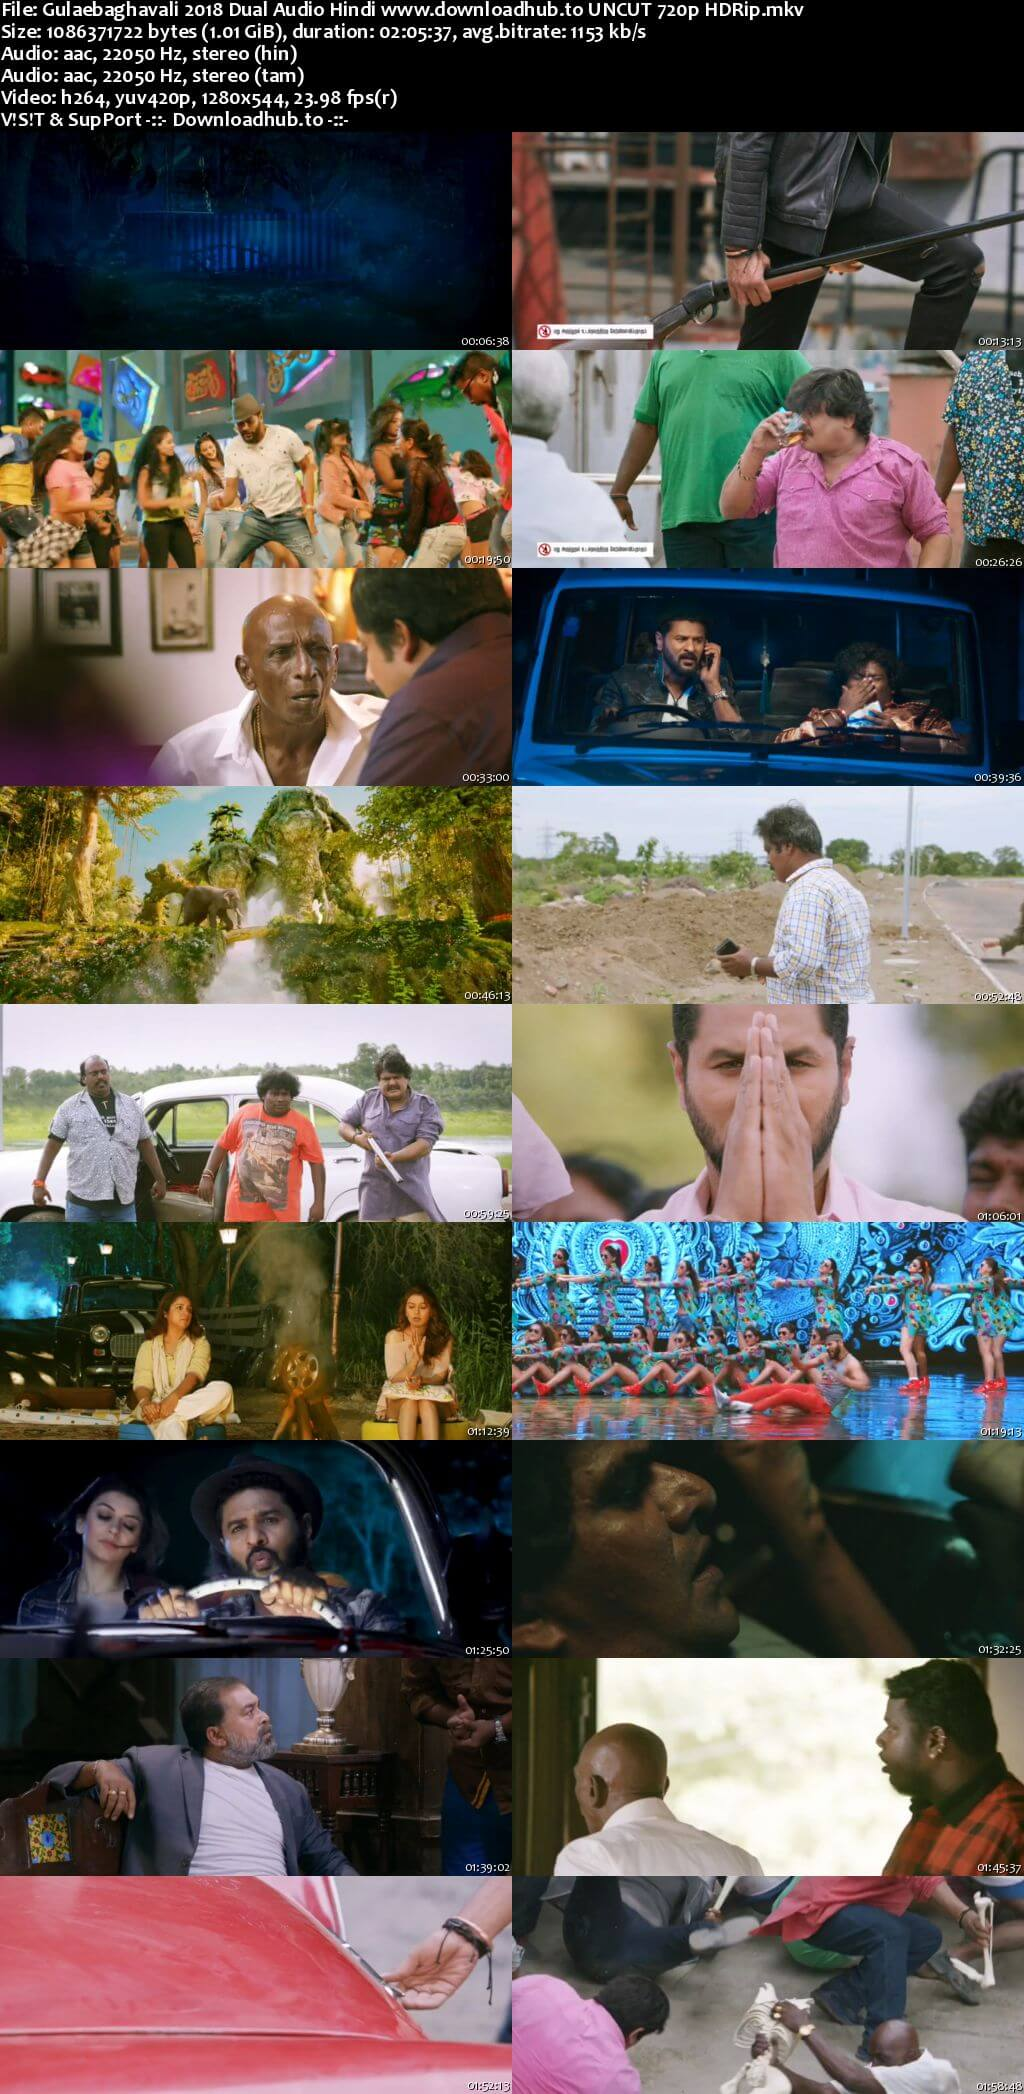 Gulaebaghavali 2018 Hindi Dual Audio 720p UNCUT HDRip x264